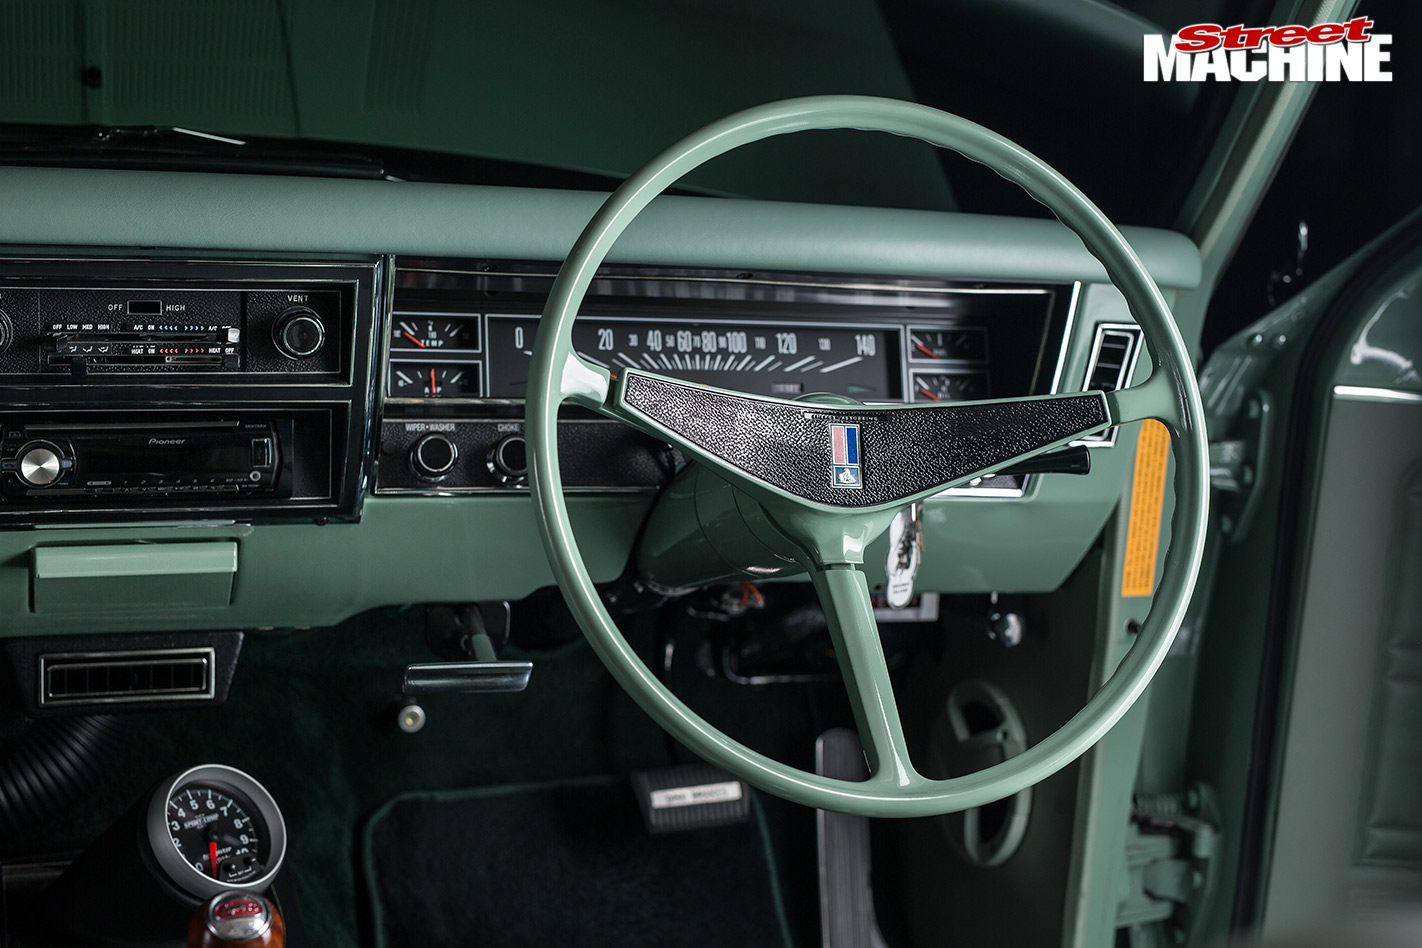 Holden HK wagon dash